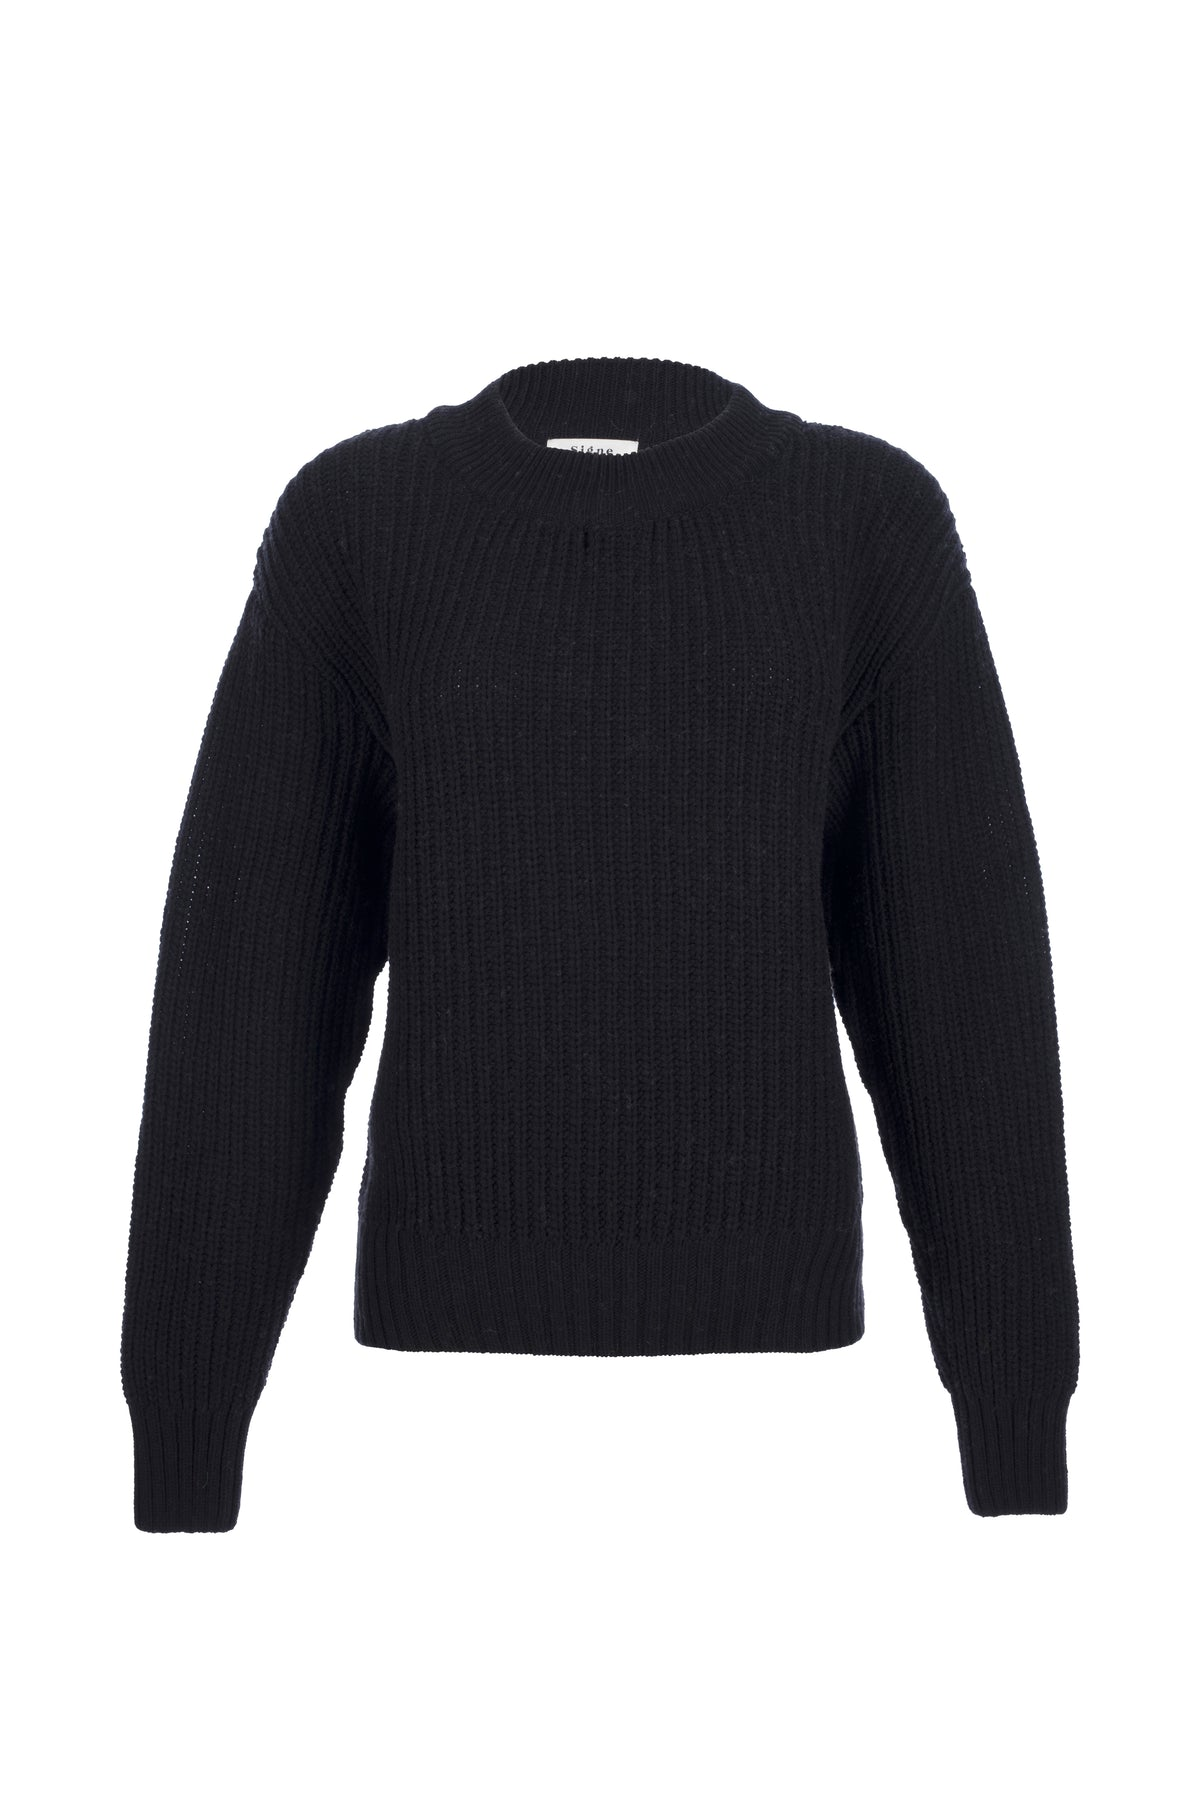 By Signe Coco Sweater in Black with a crewneck and long sleeves.